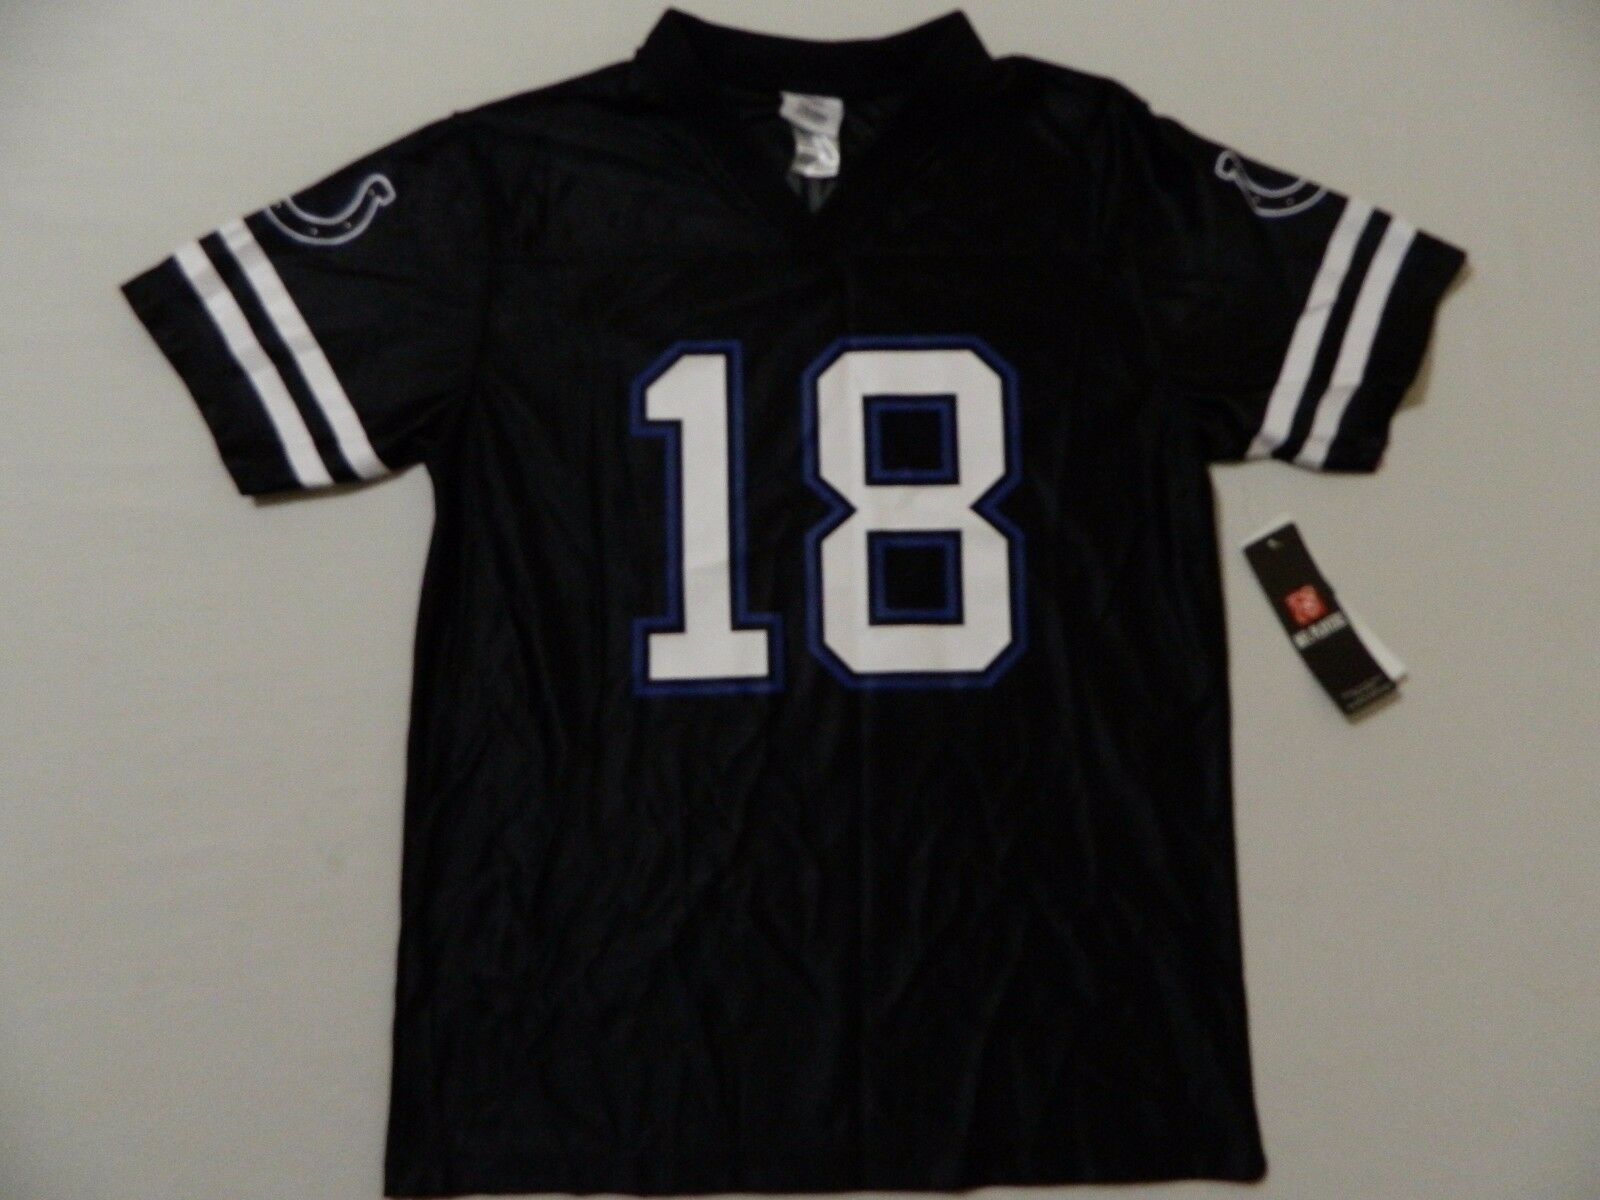 Primary image for M55 NFL TEAM APPAREL Black Indianapolis Colts Peyton Manning Jersey YOUTH Sizes